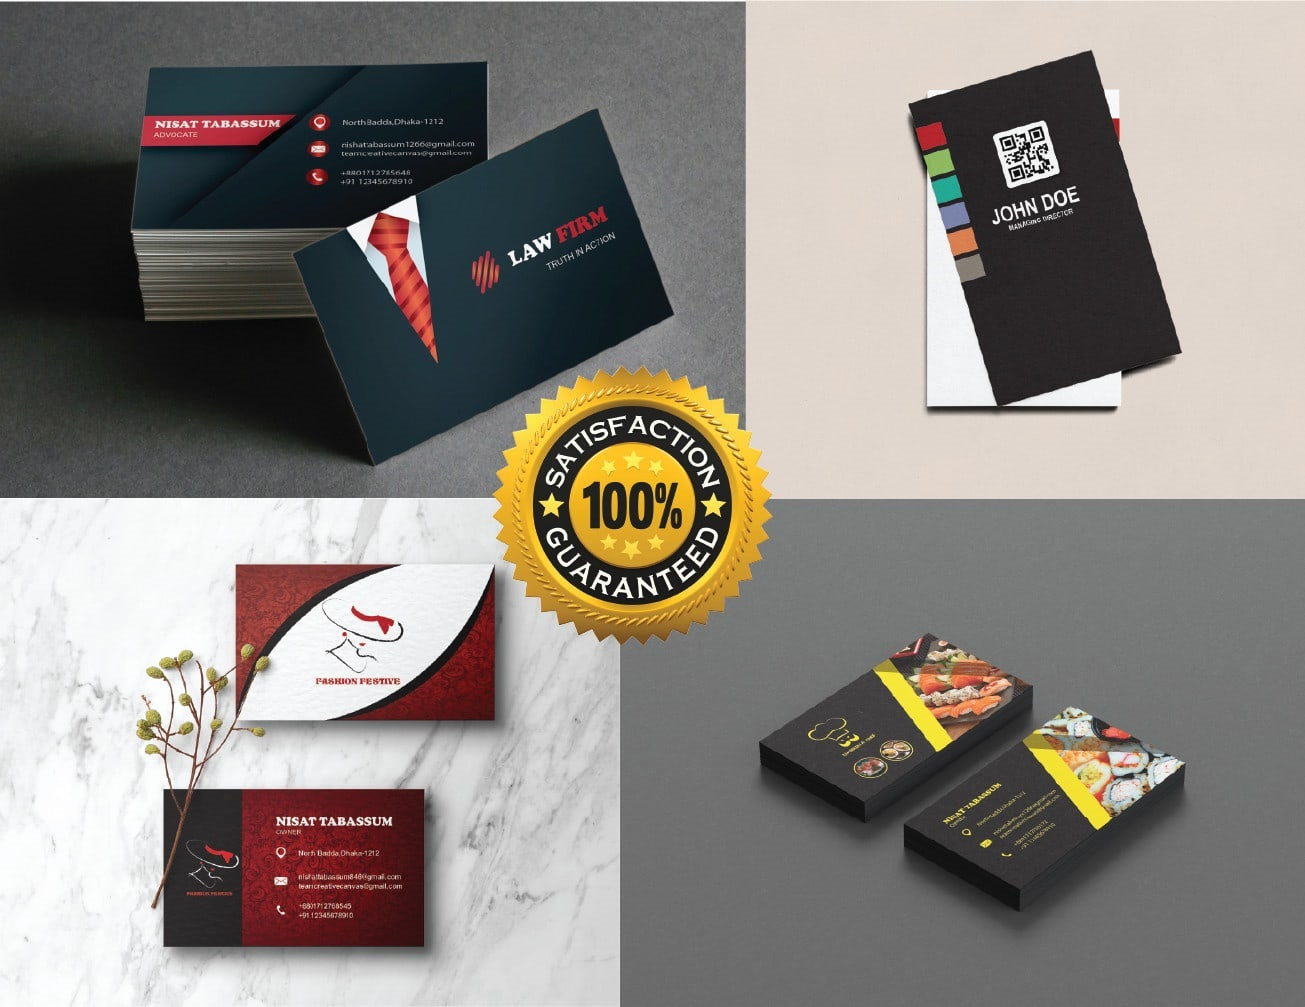 I will design modern unique professional business cards,  stationery and brand identity